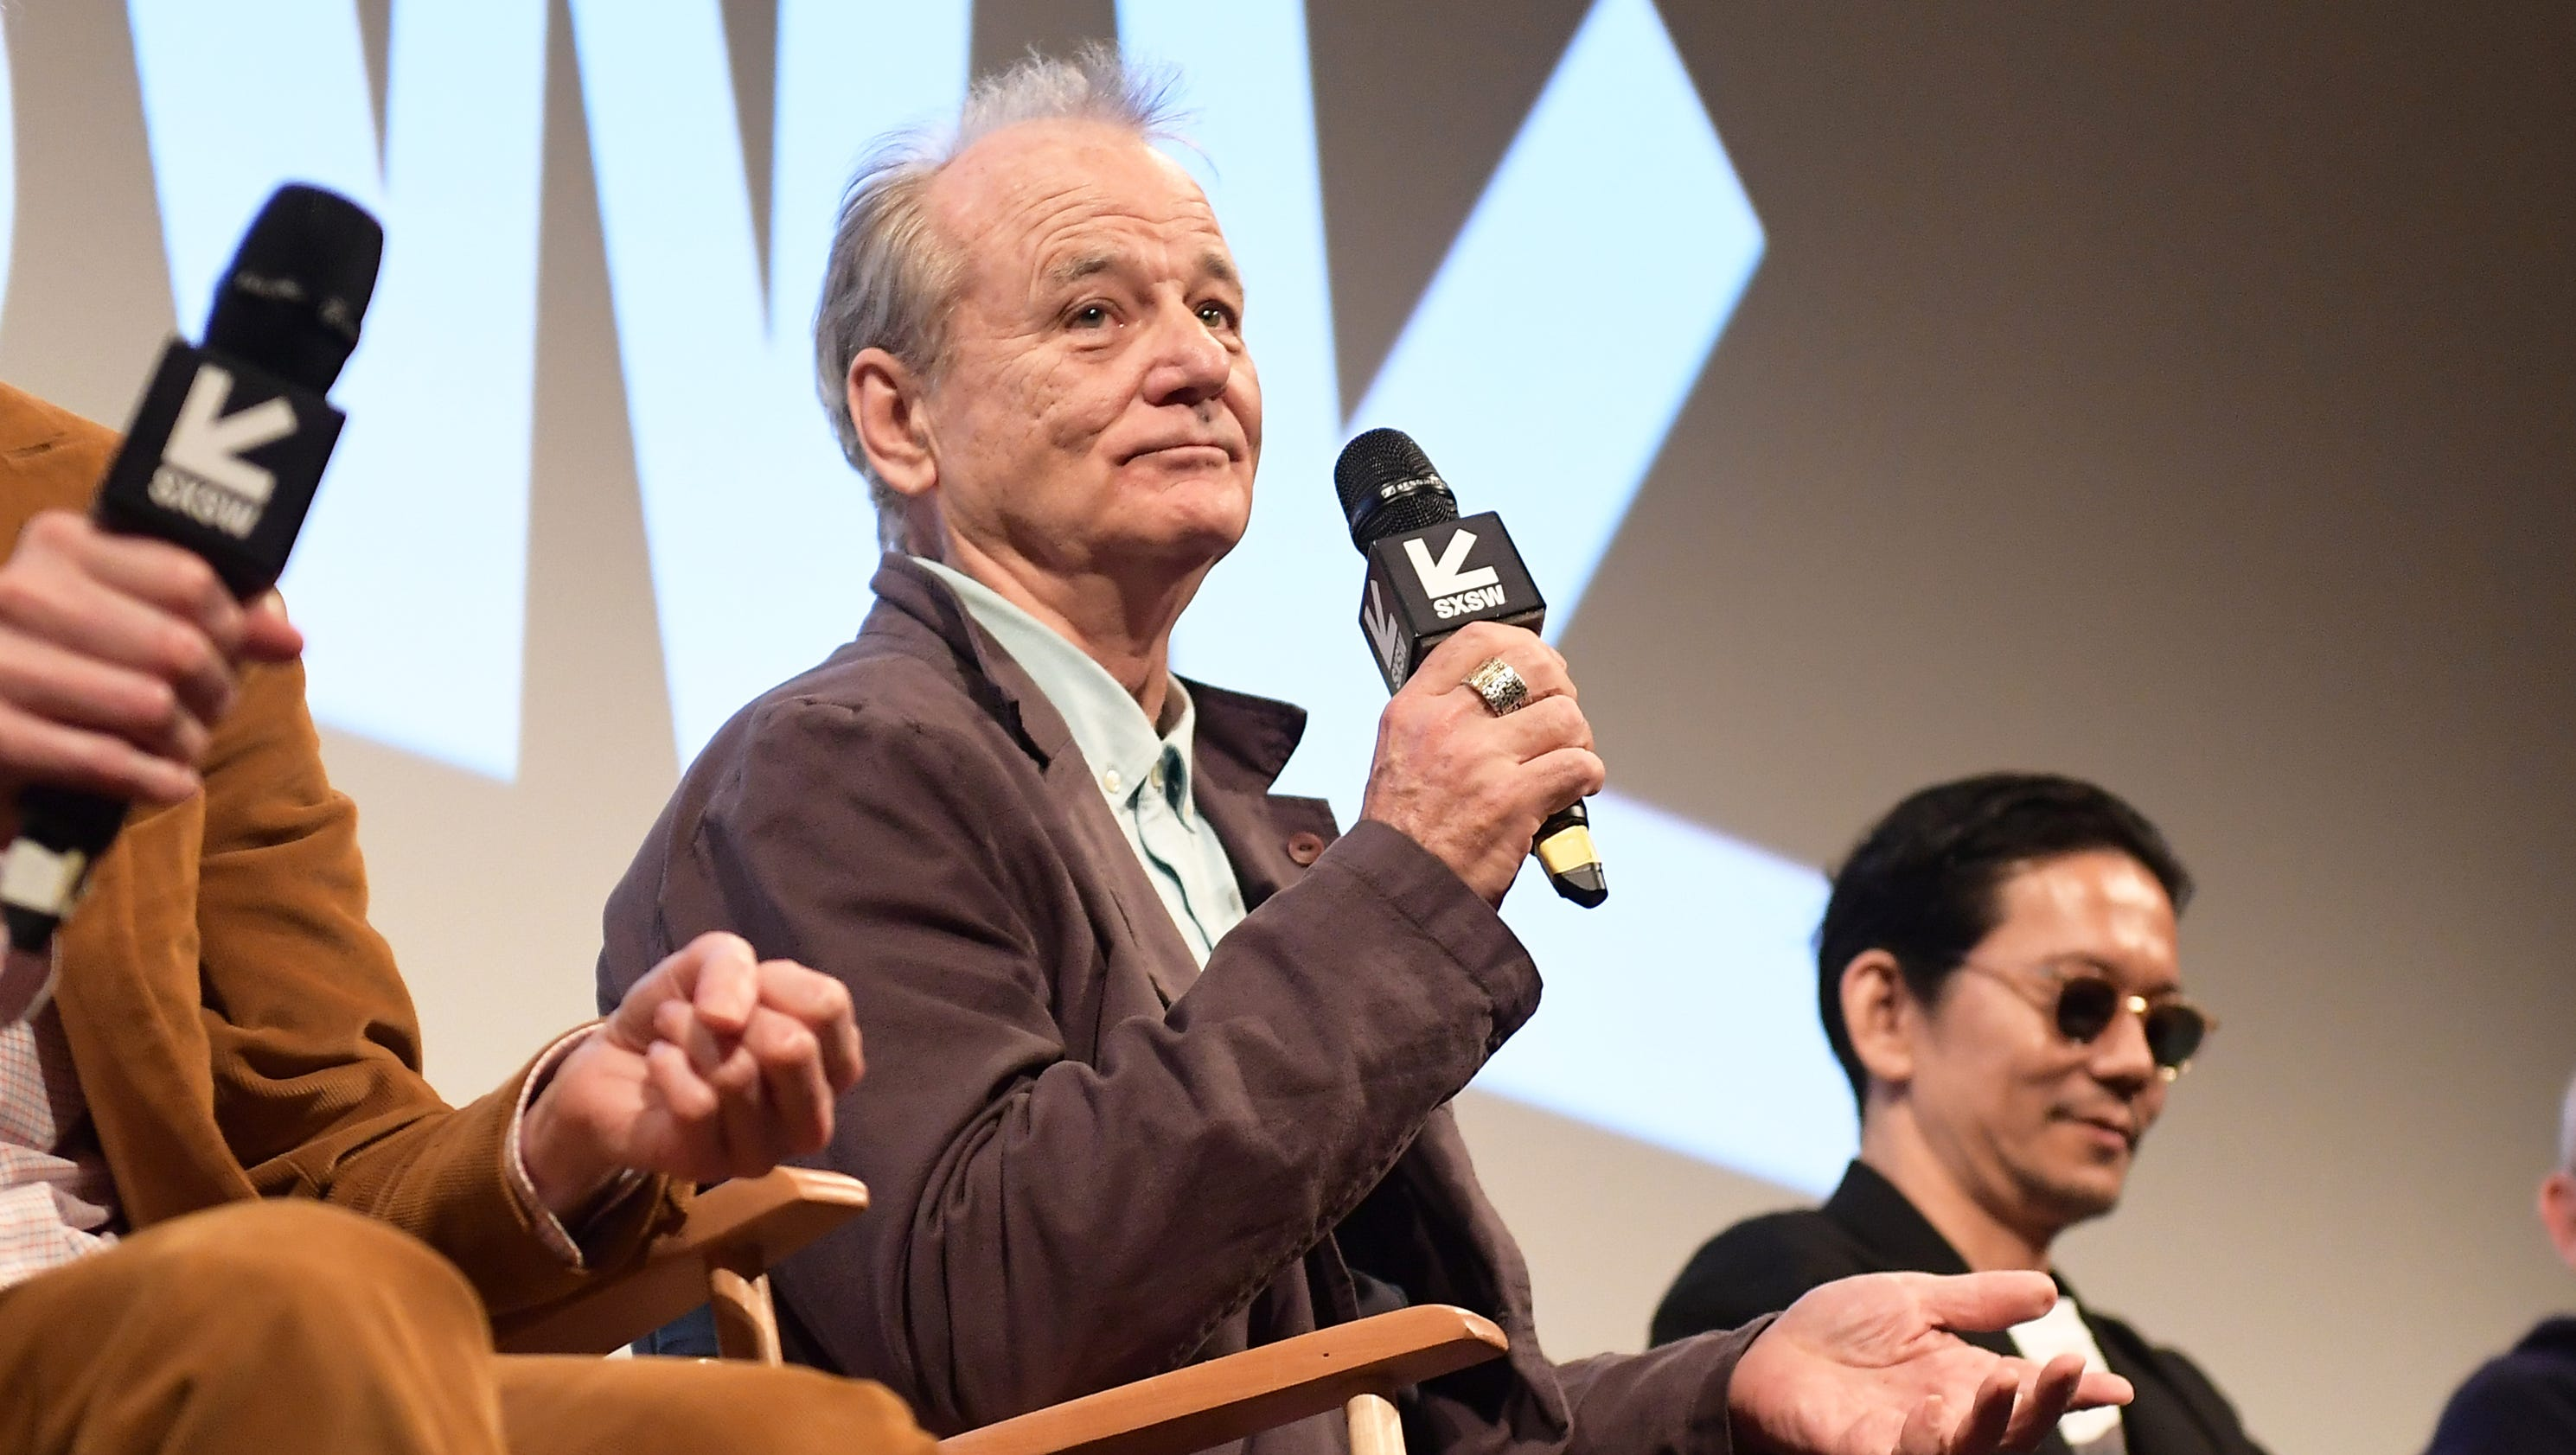 The 'Isle of Dogs' premiere at SXSW was riveting, then Bill Murray fell asleep